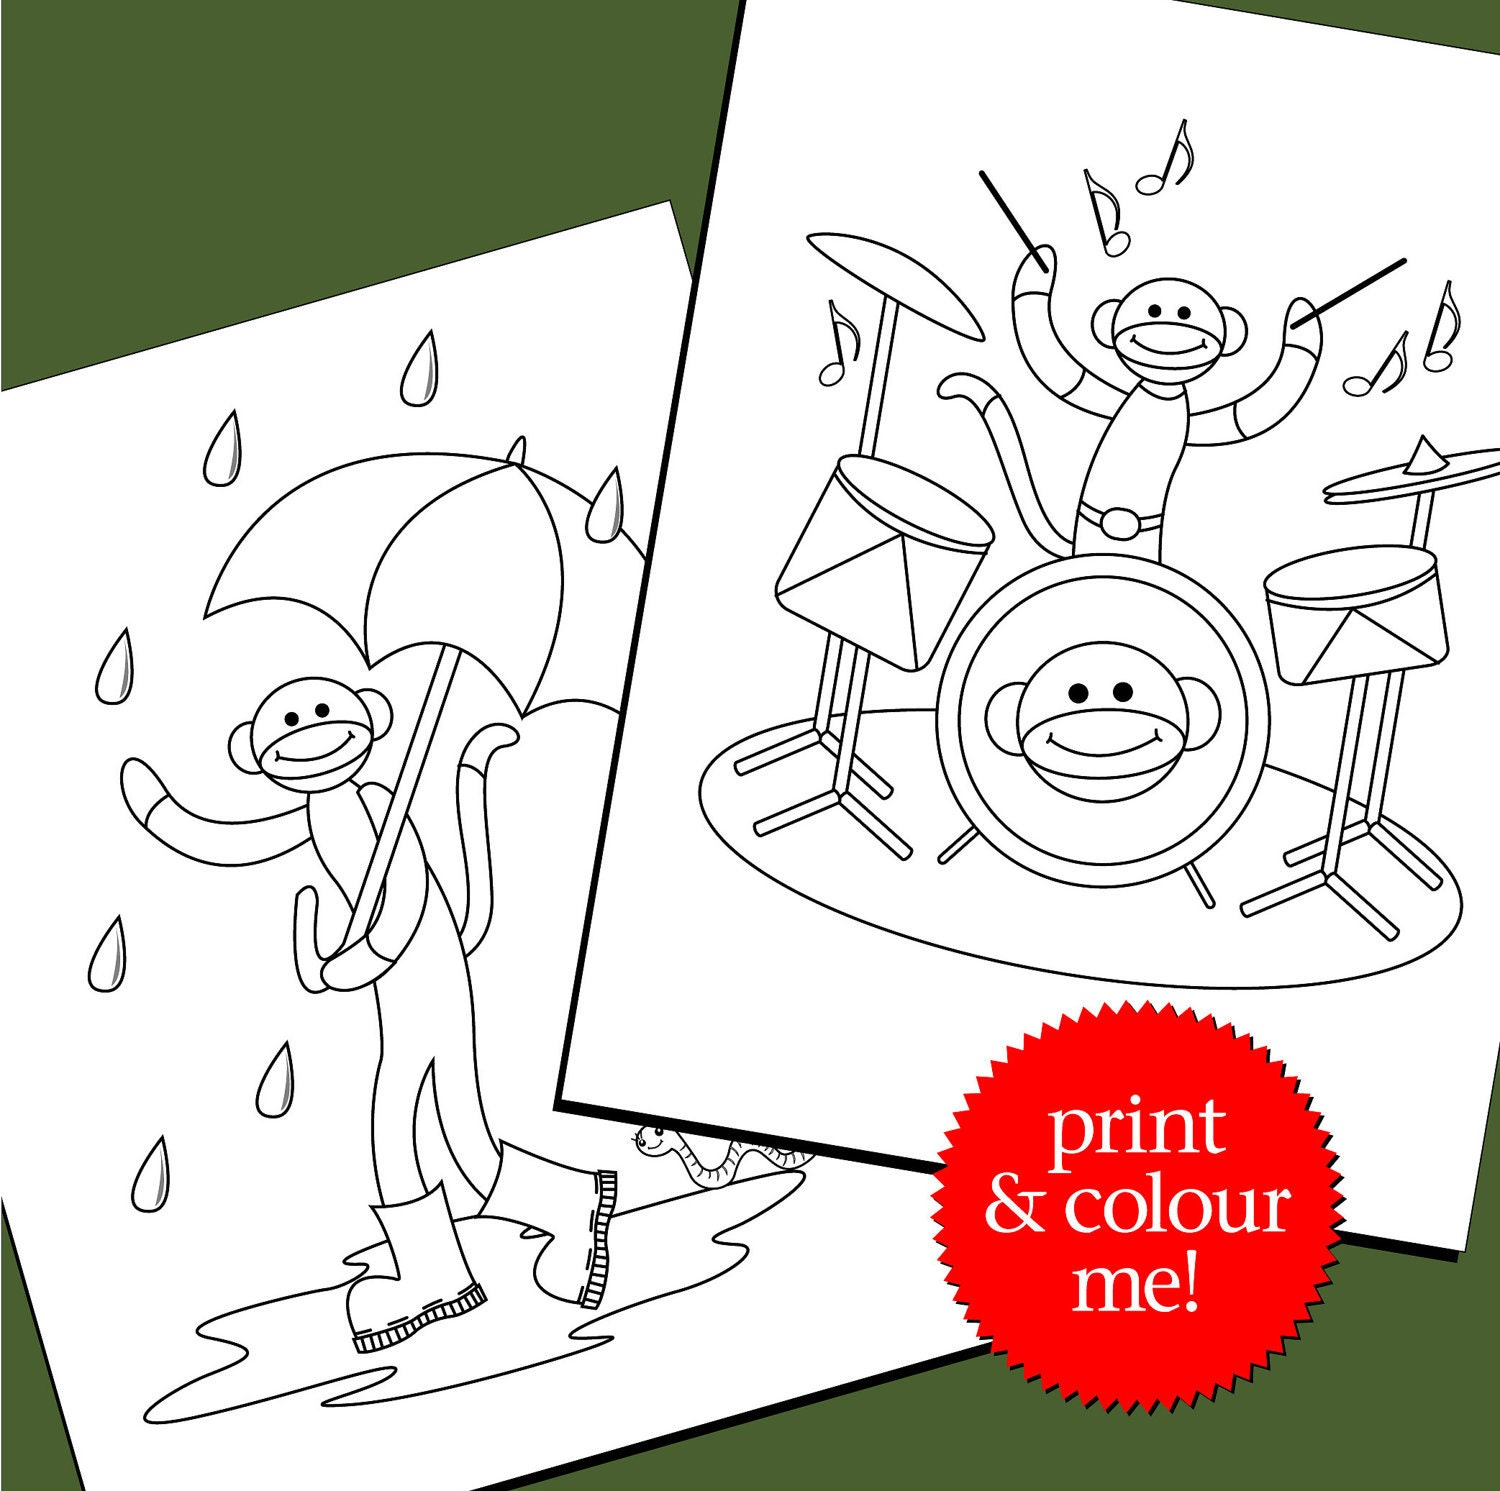 Cute Sock Monkey Coloring Pages Colouring pages sock monkeying around ...